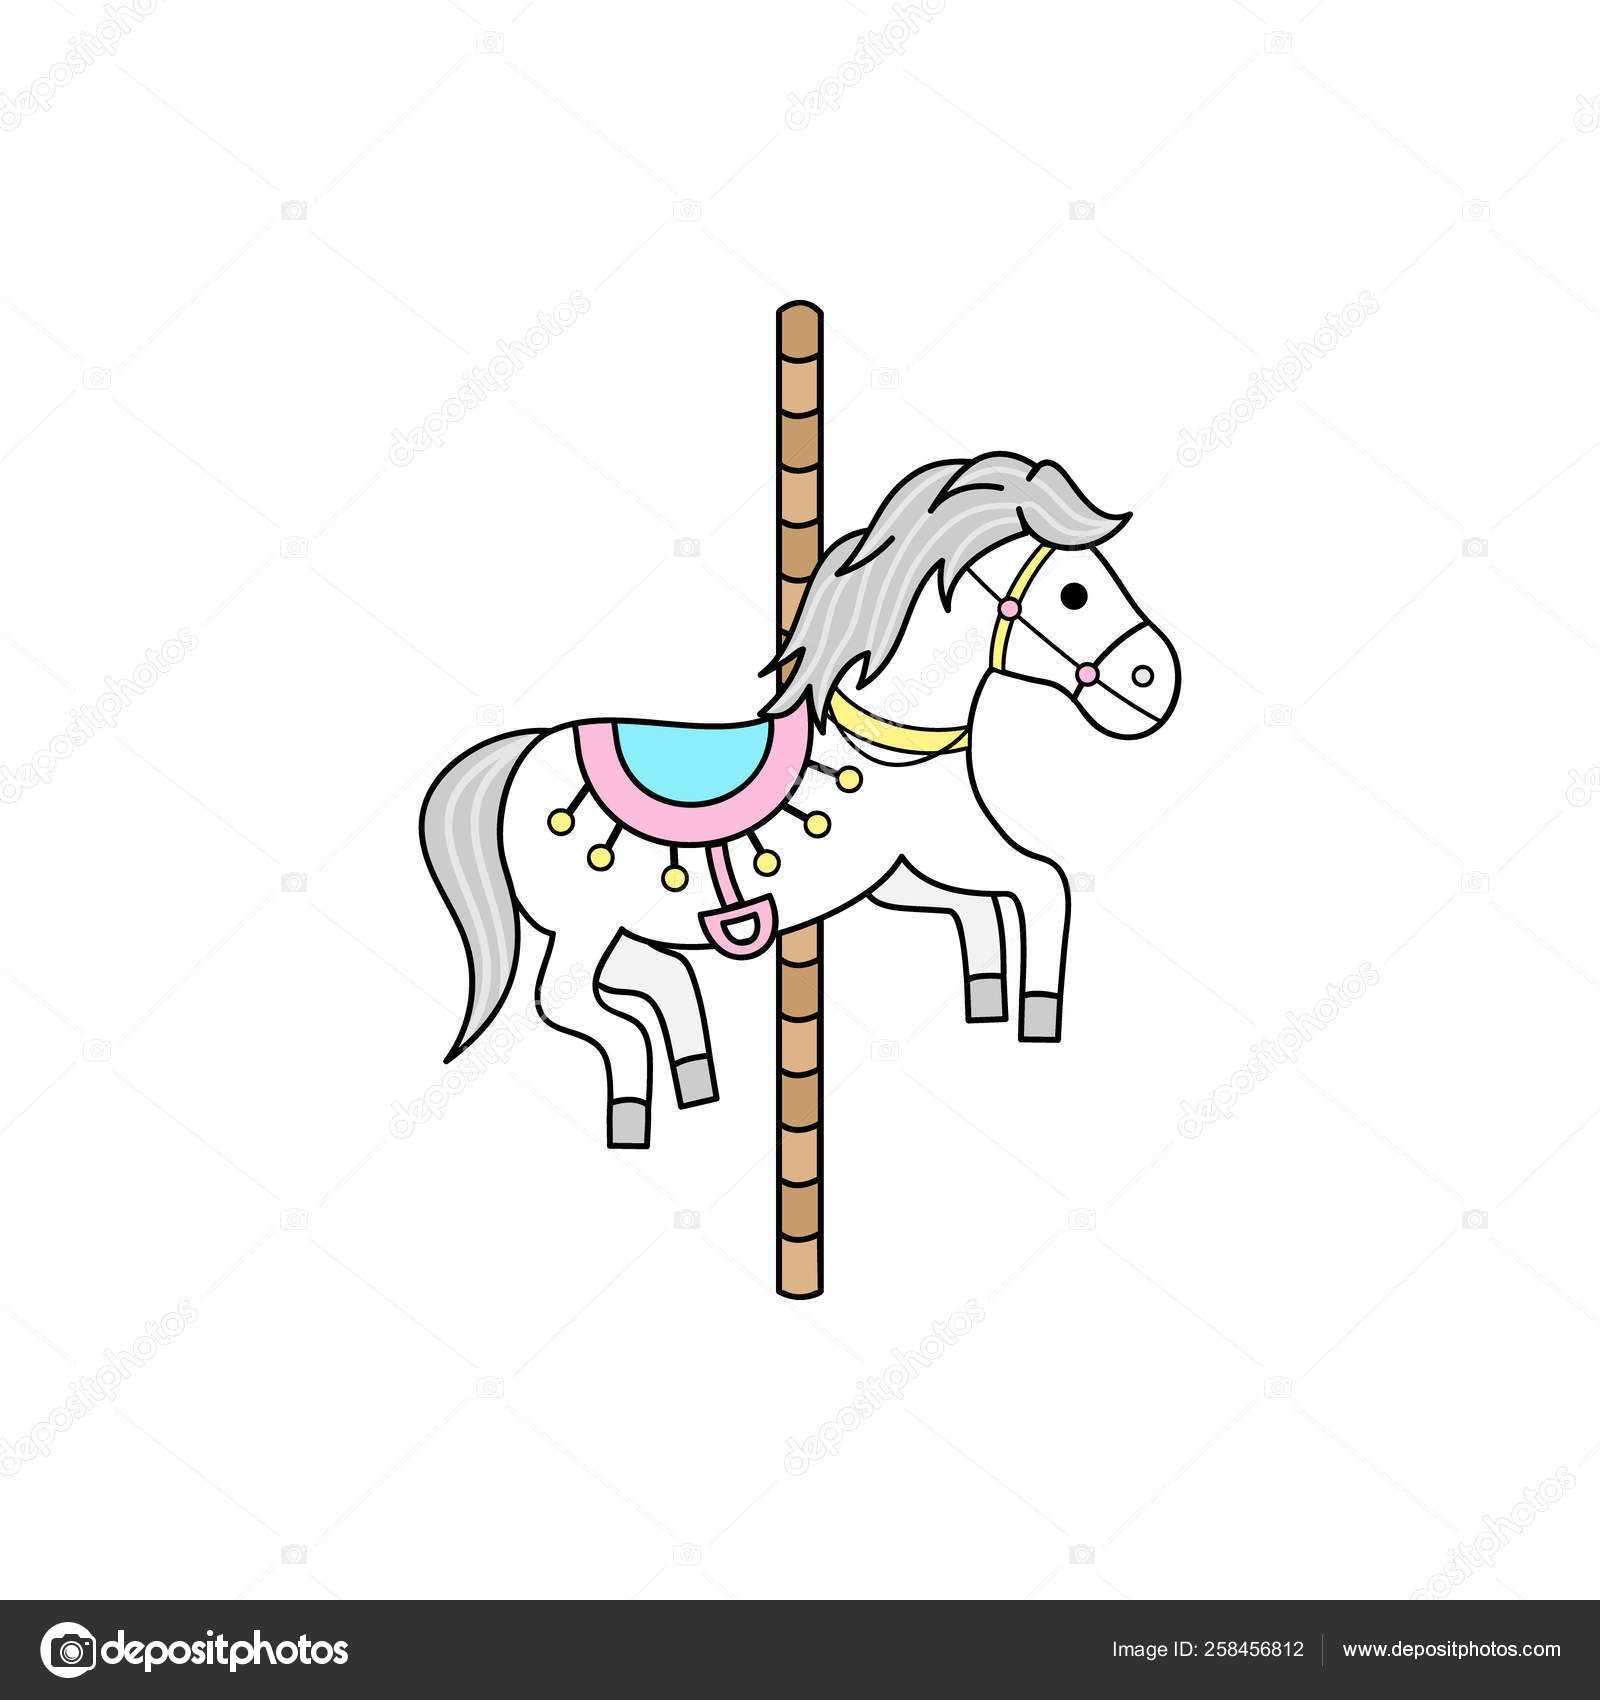 Merry Carousel Horse Pole Vector Outlined Illustration Icon Stock Vector C Kiki Vagnerova Gmail Com 258456812